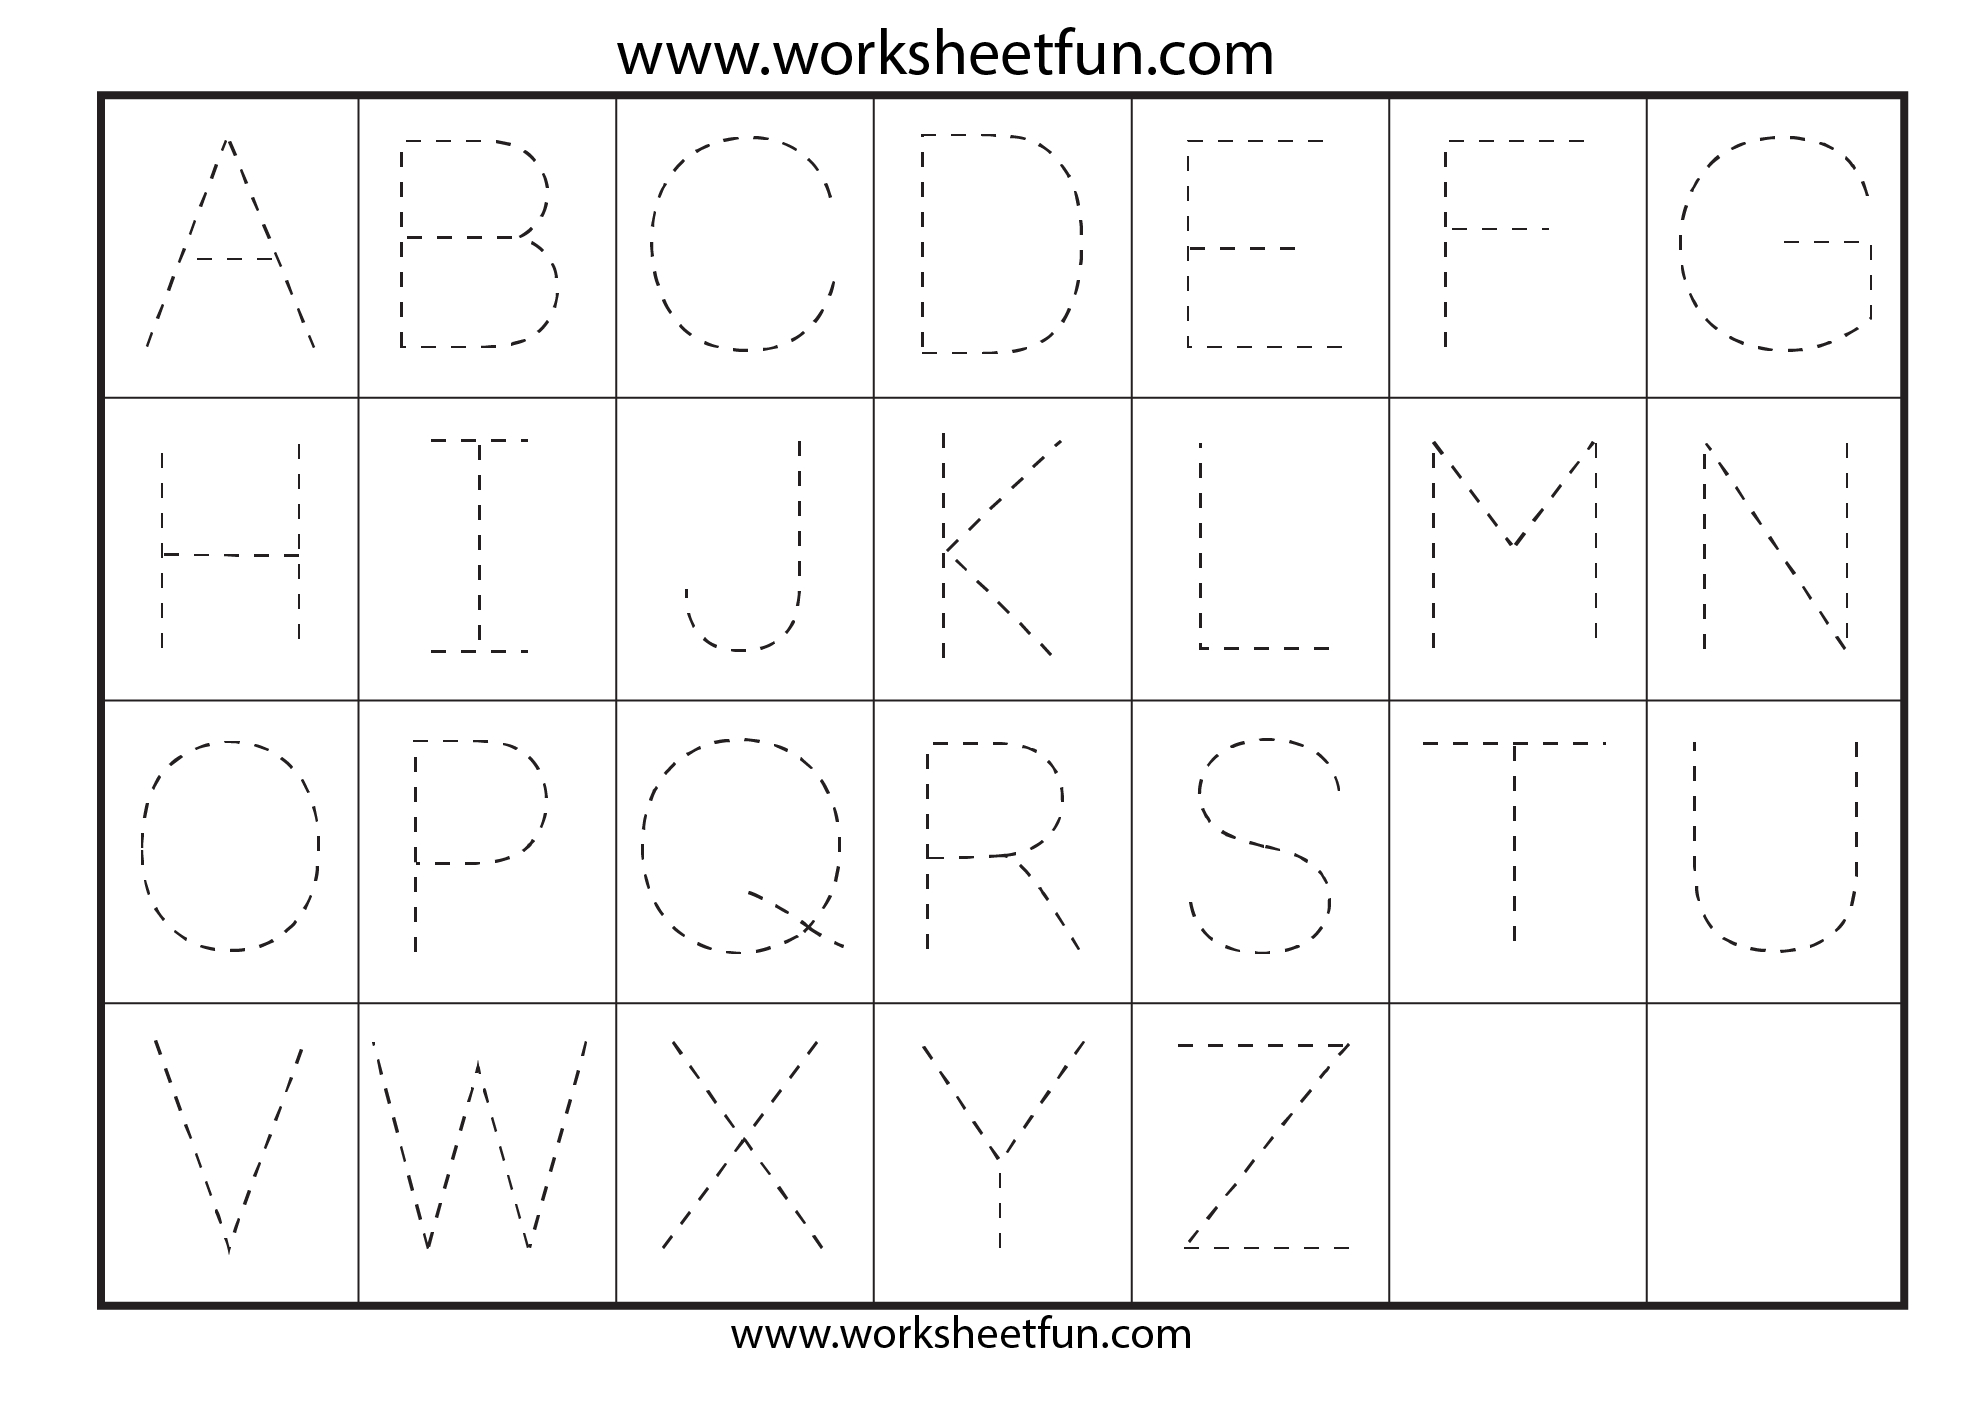 Letter Tracing Worksheets For Kindergarten - Capital Letters | Capital Alphabets Tracing Worksheets Printable